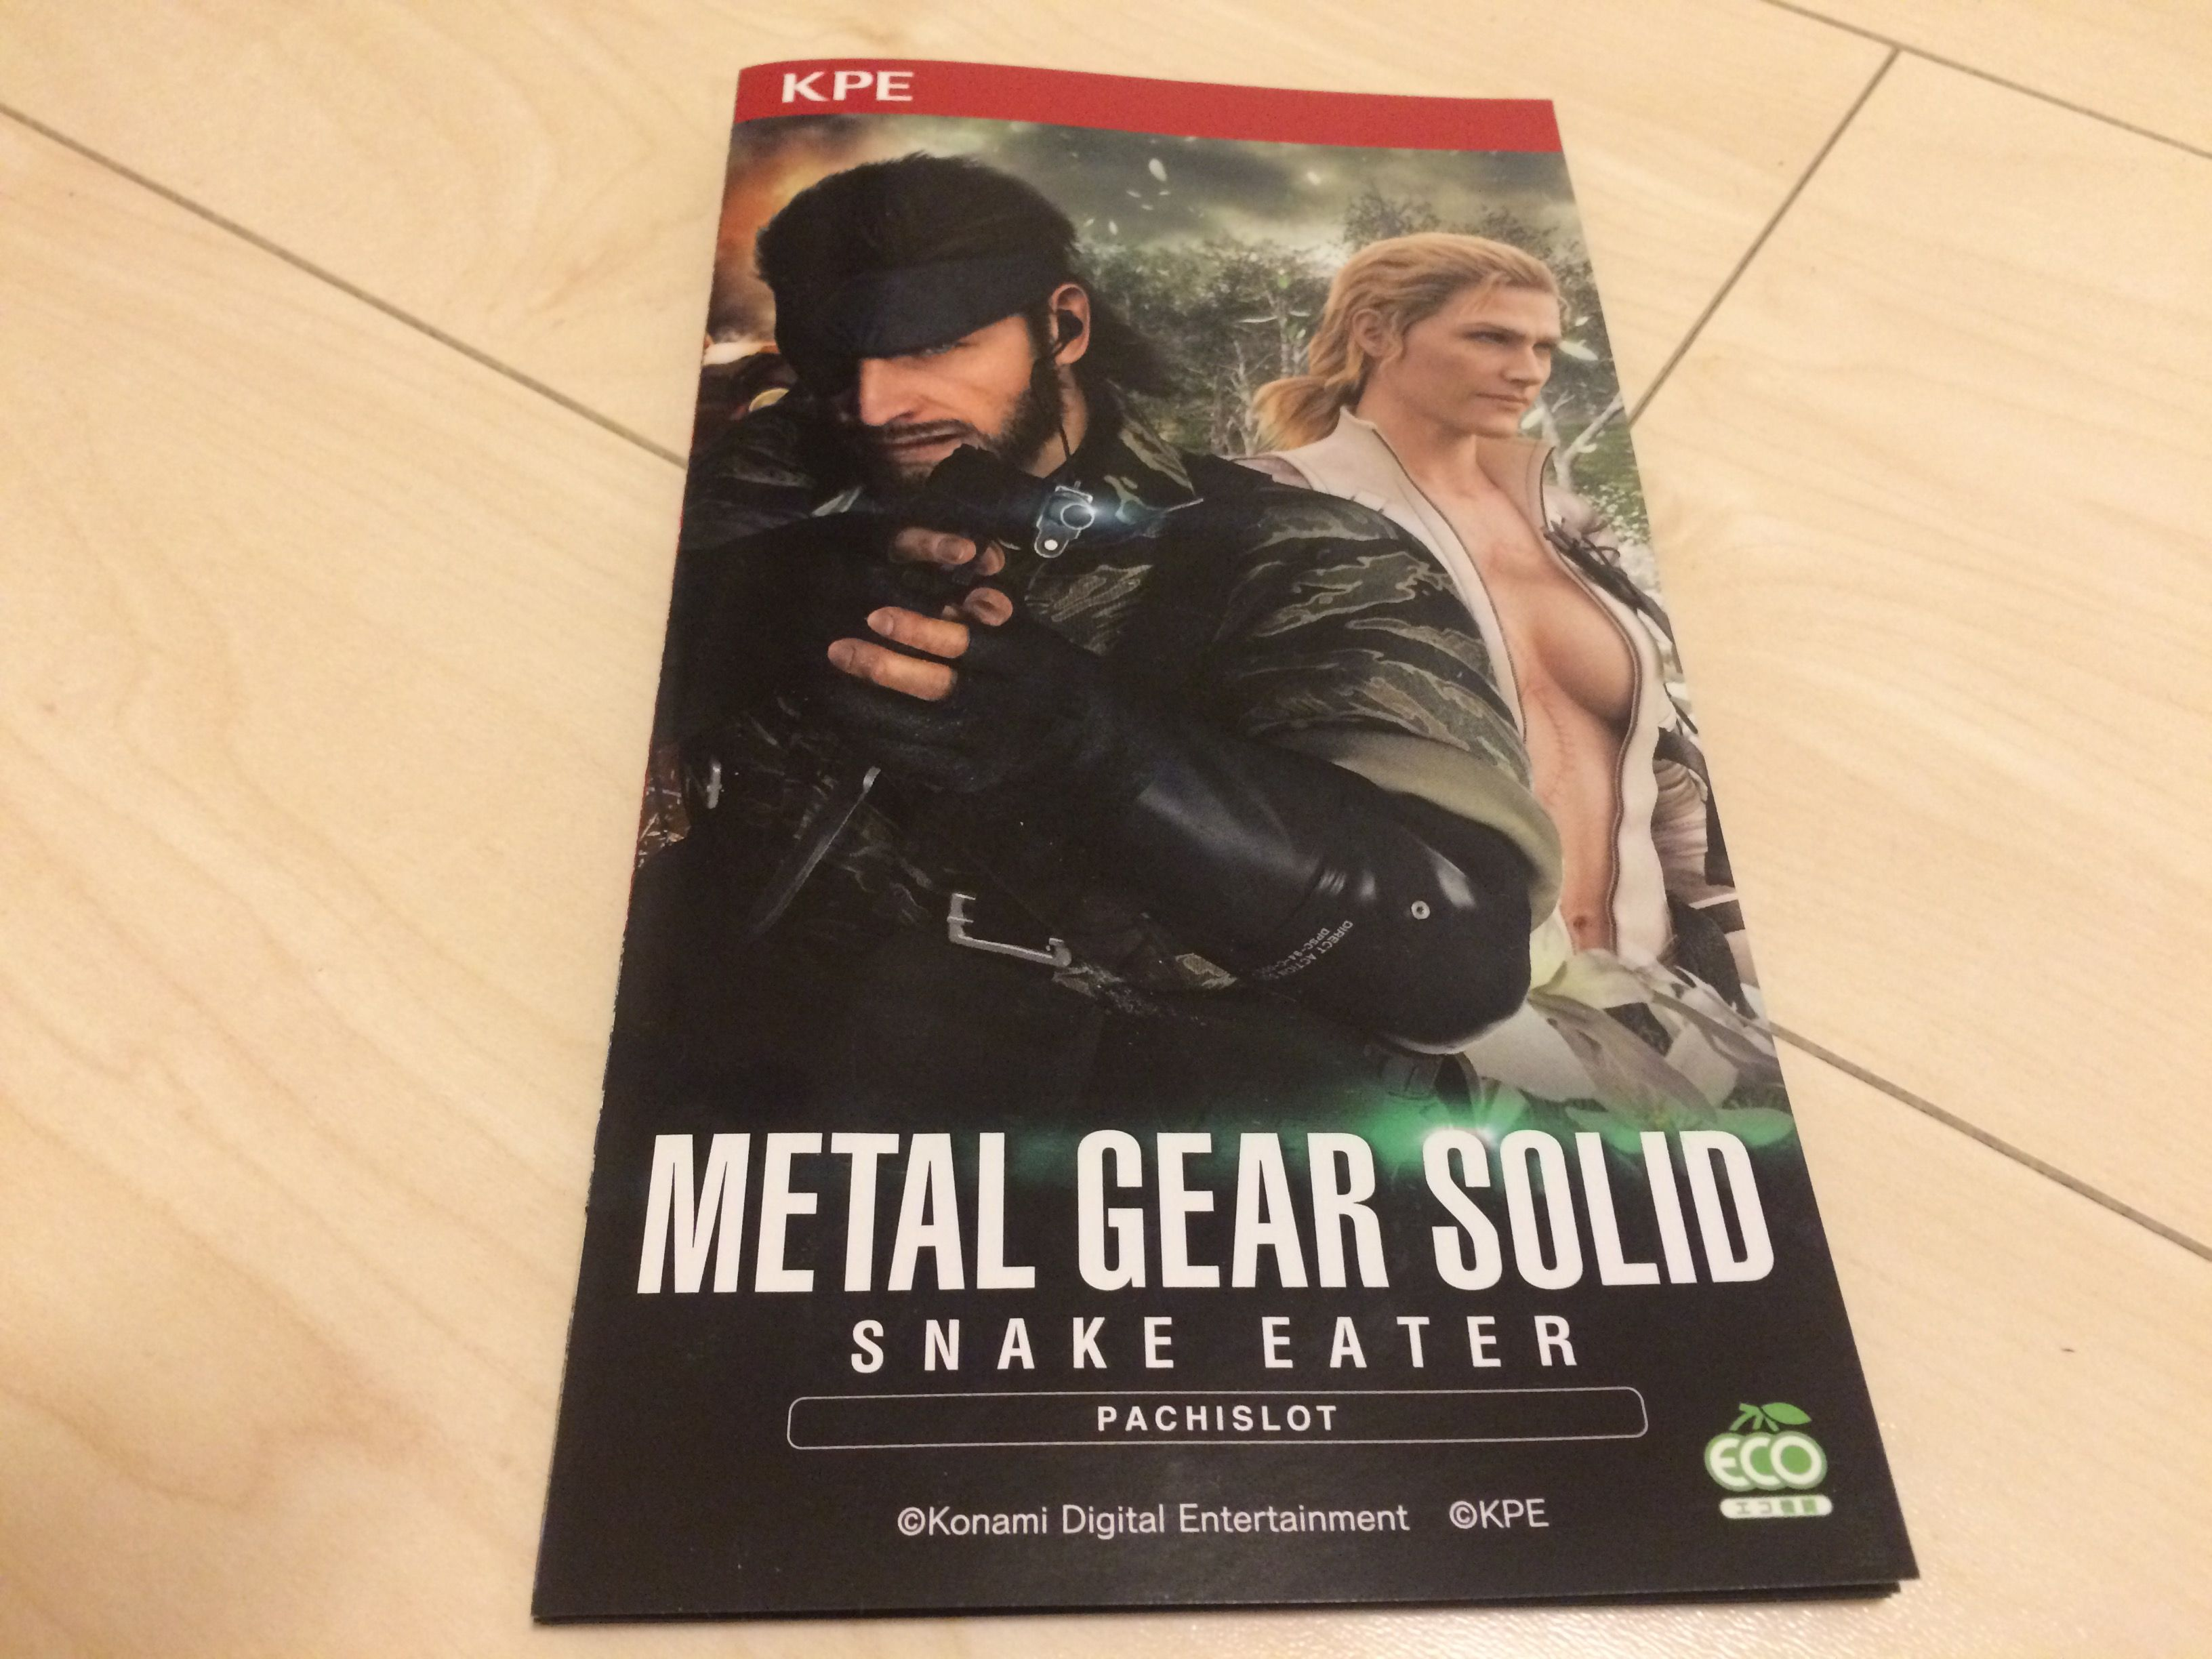 Metal Gear Pachislot Brochure #MetalGearSolid #mgs #MGSV #MetalGear #Konami #cosplay #PS4 #game #MGSVTPP